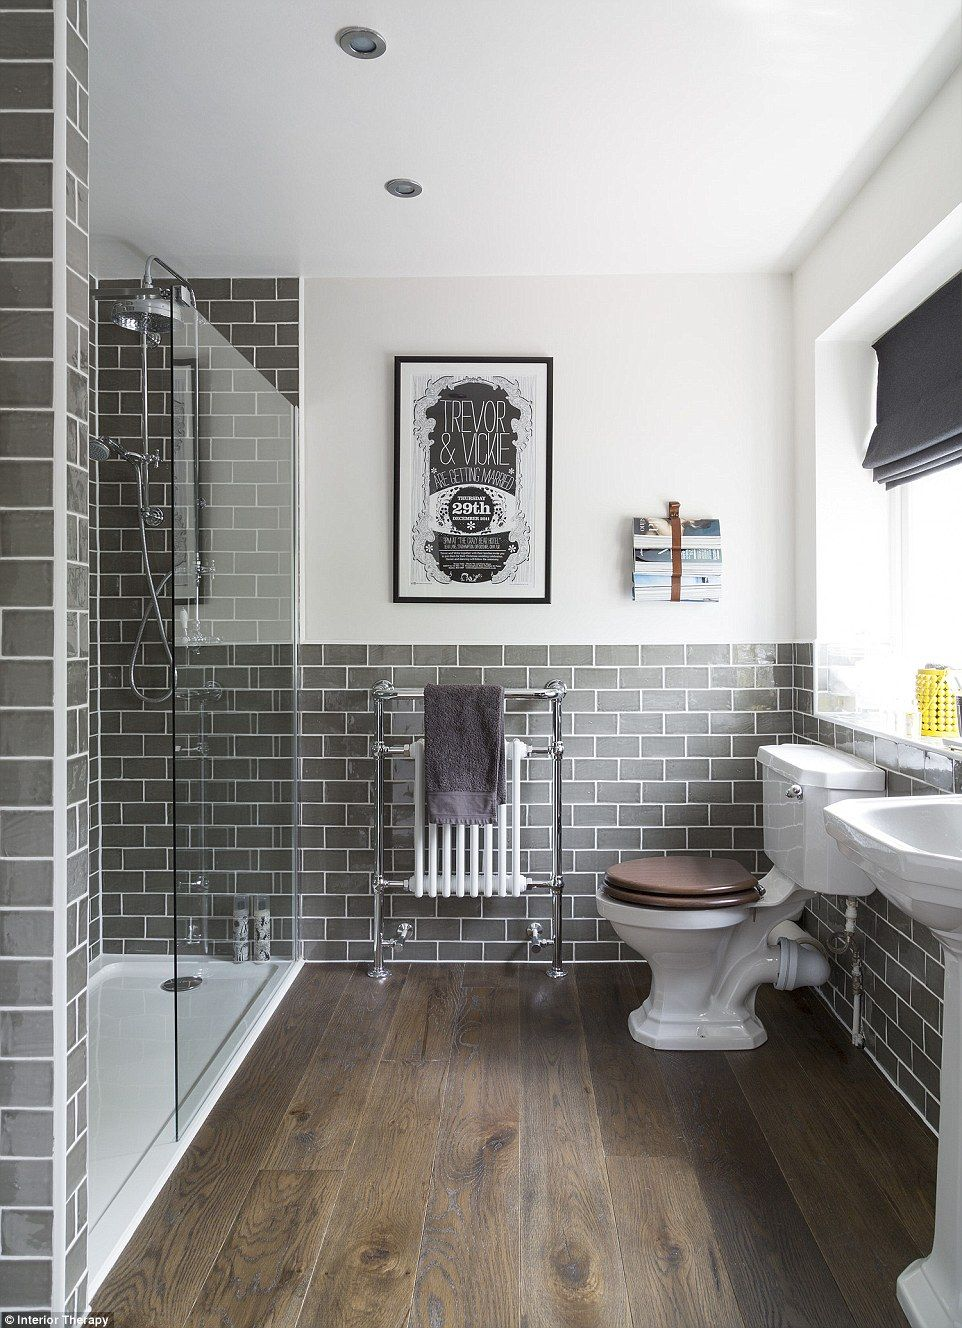 Incroyable Wood Floors/ Transition To Tile In Shower Image Of A Refurbishment In  Buckinghamshire, Posted By Interior Therapy, Has Been Saved More Than Times  By Houzz ...